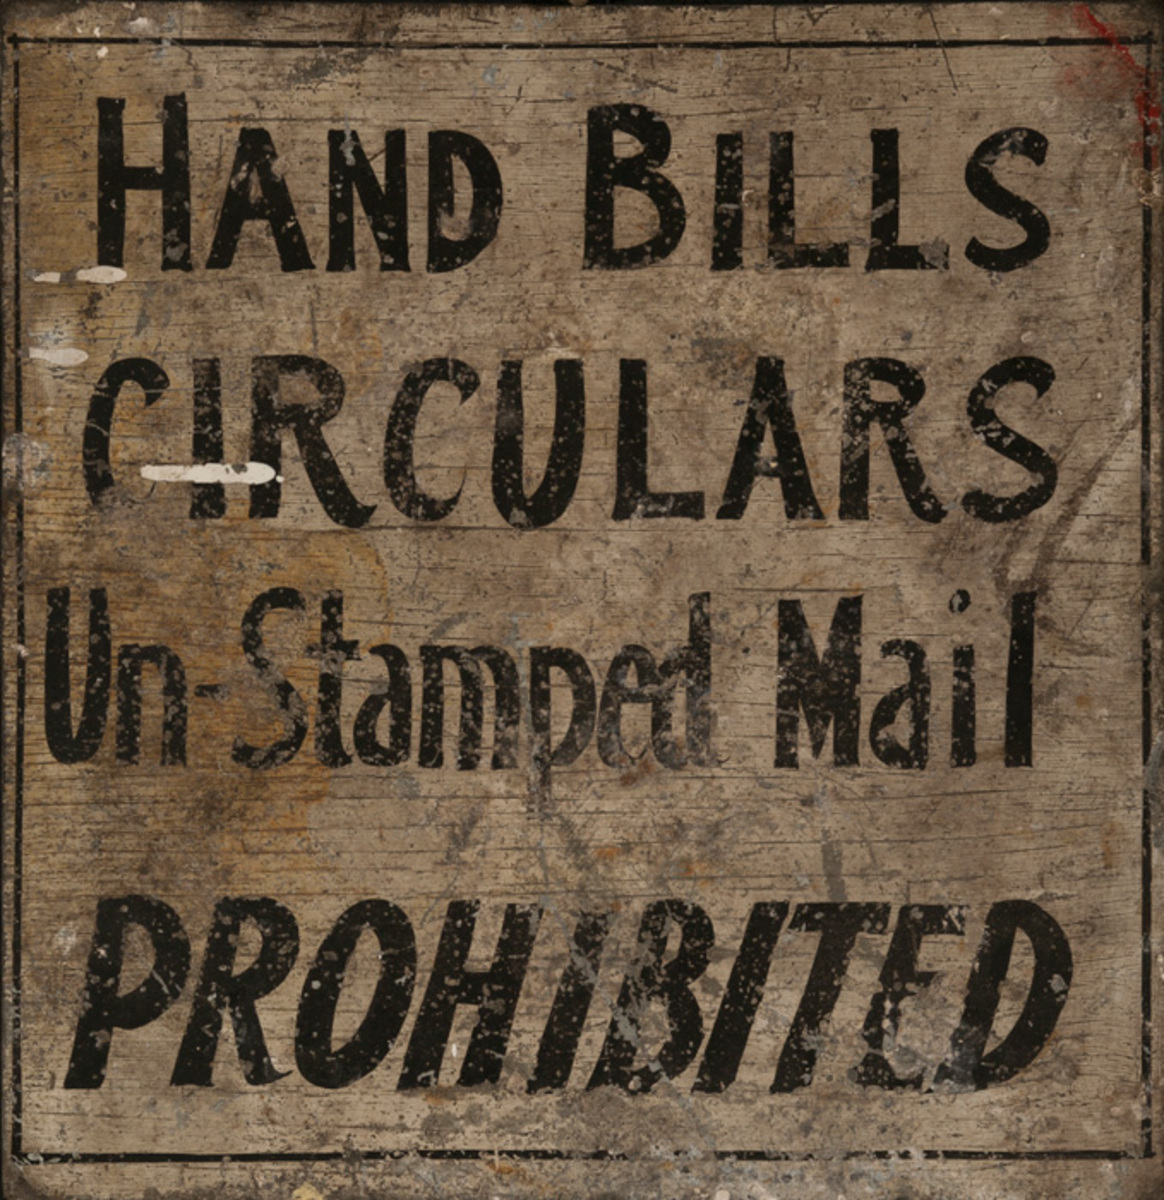 Hand Bills, Circulars, Un-Stamped Mail Prohibited, Original Painted Sign